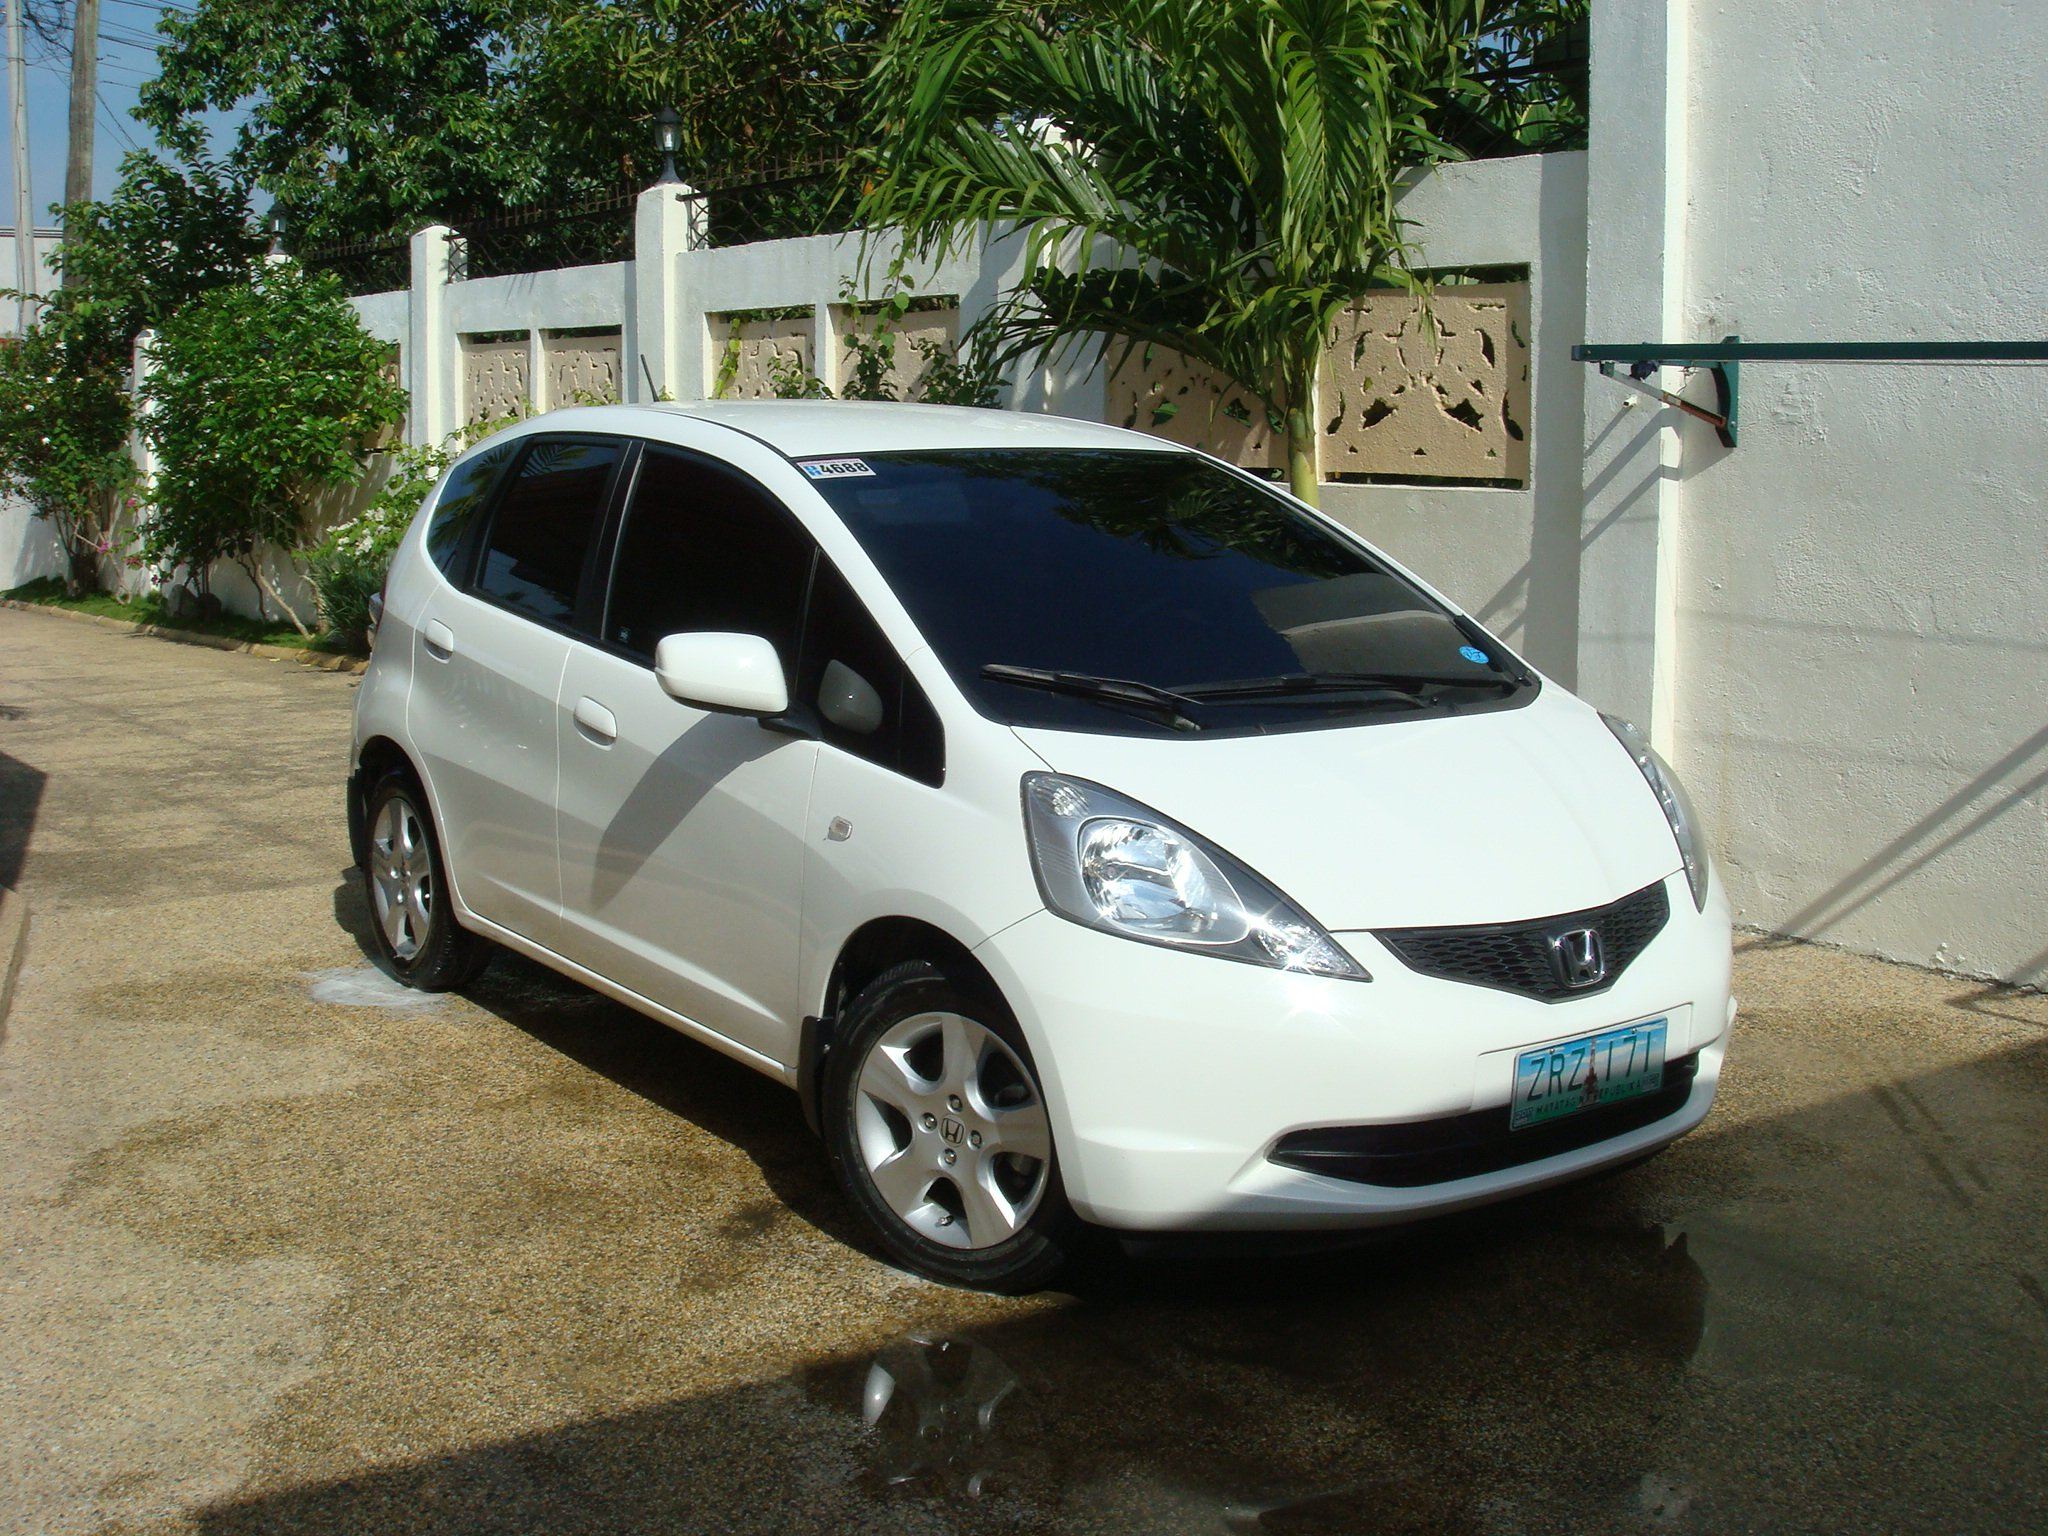 FOR SALE: All new Honda Jazz 2010 model Butuan - Cagayan -  Davao